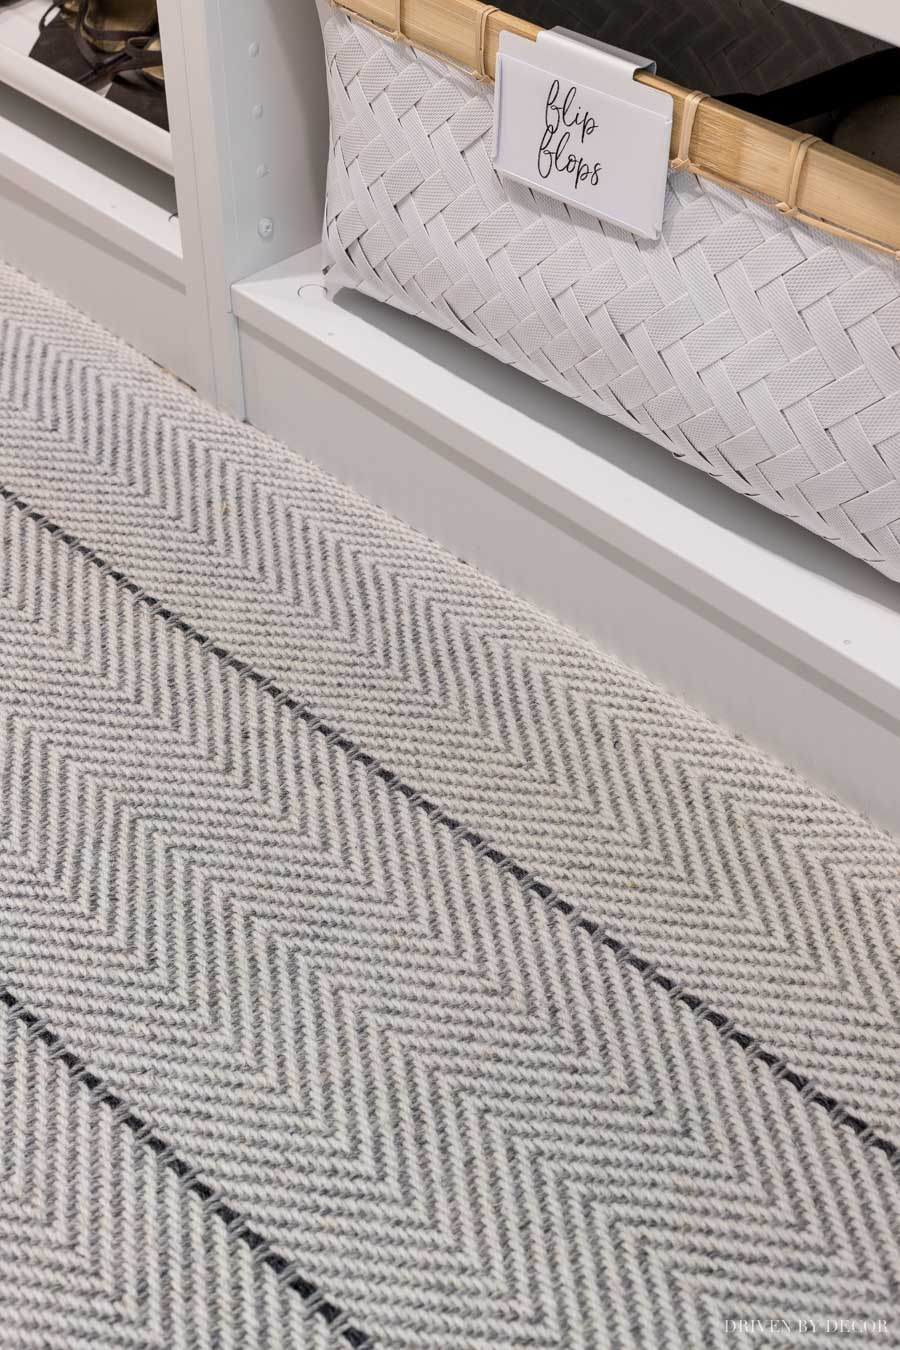 The carpet in our master bedroom closet - Peter Island Stripe!